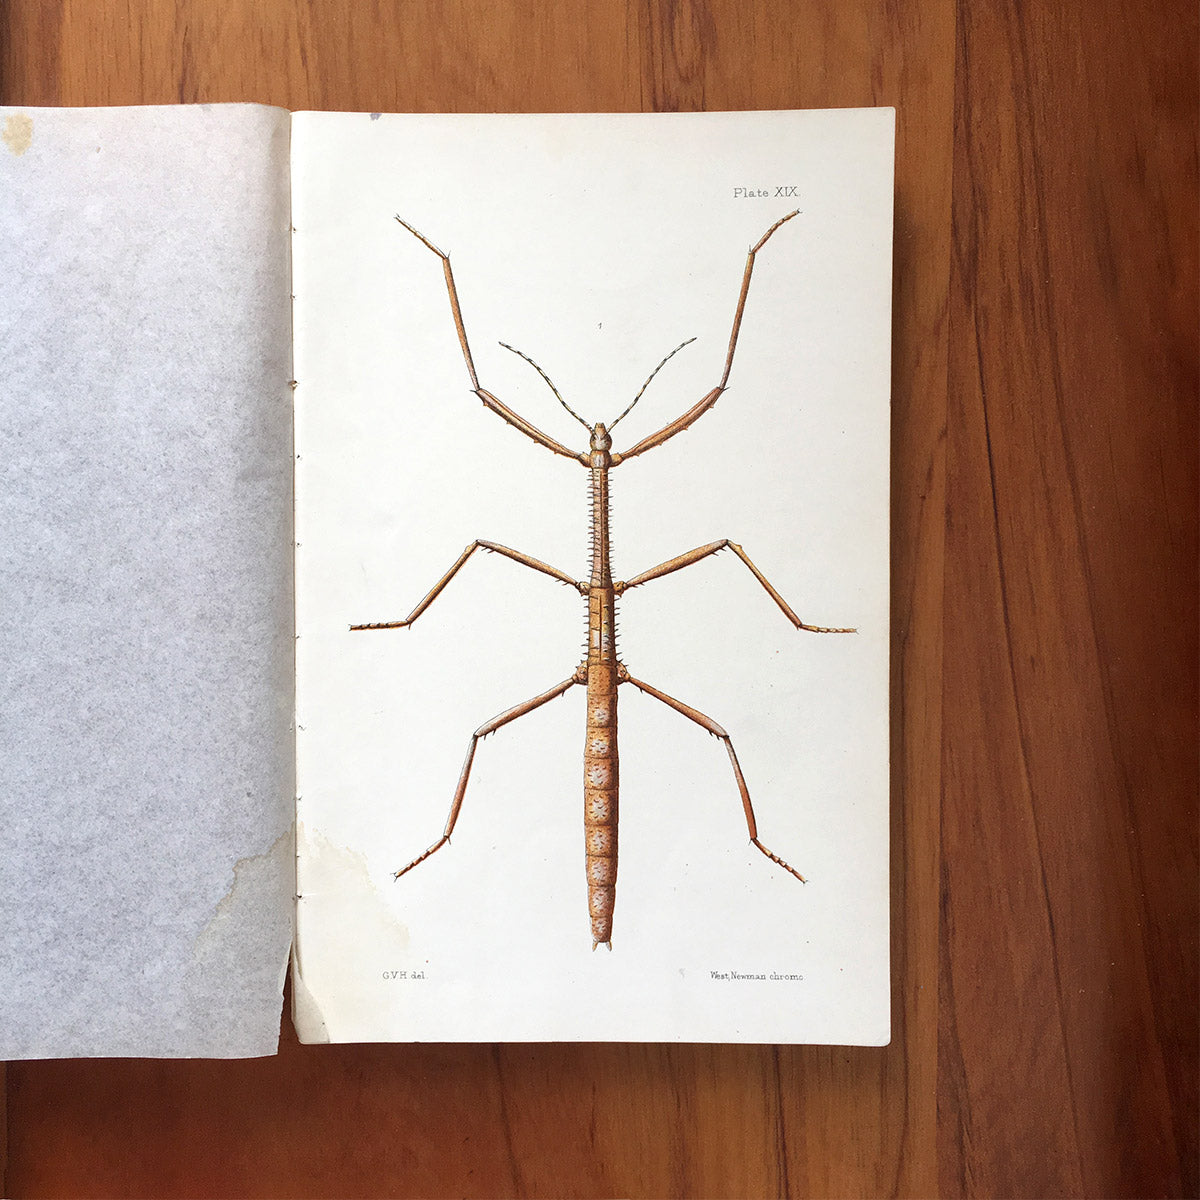 New Zealand insects. Plate XIX. Orthoptera